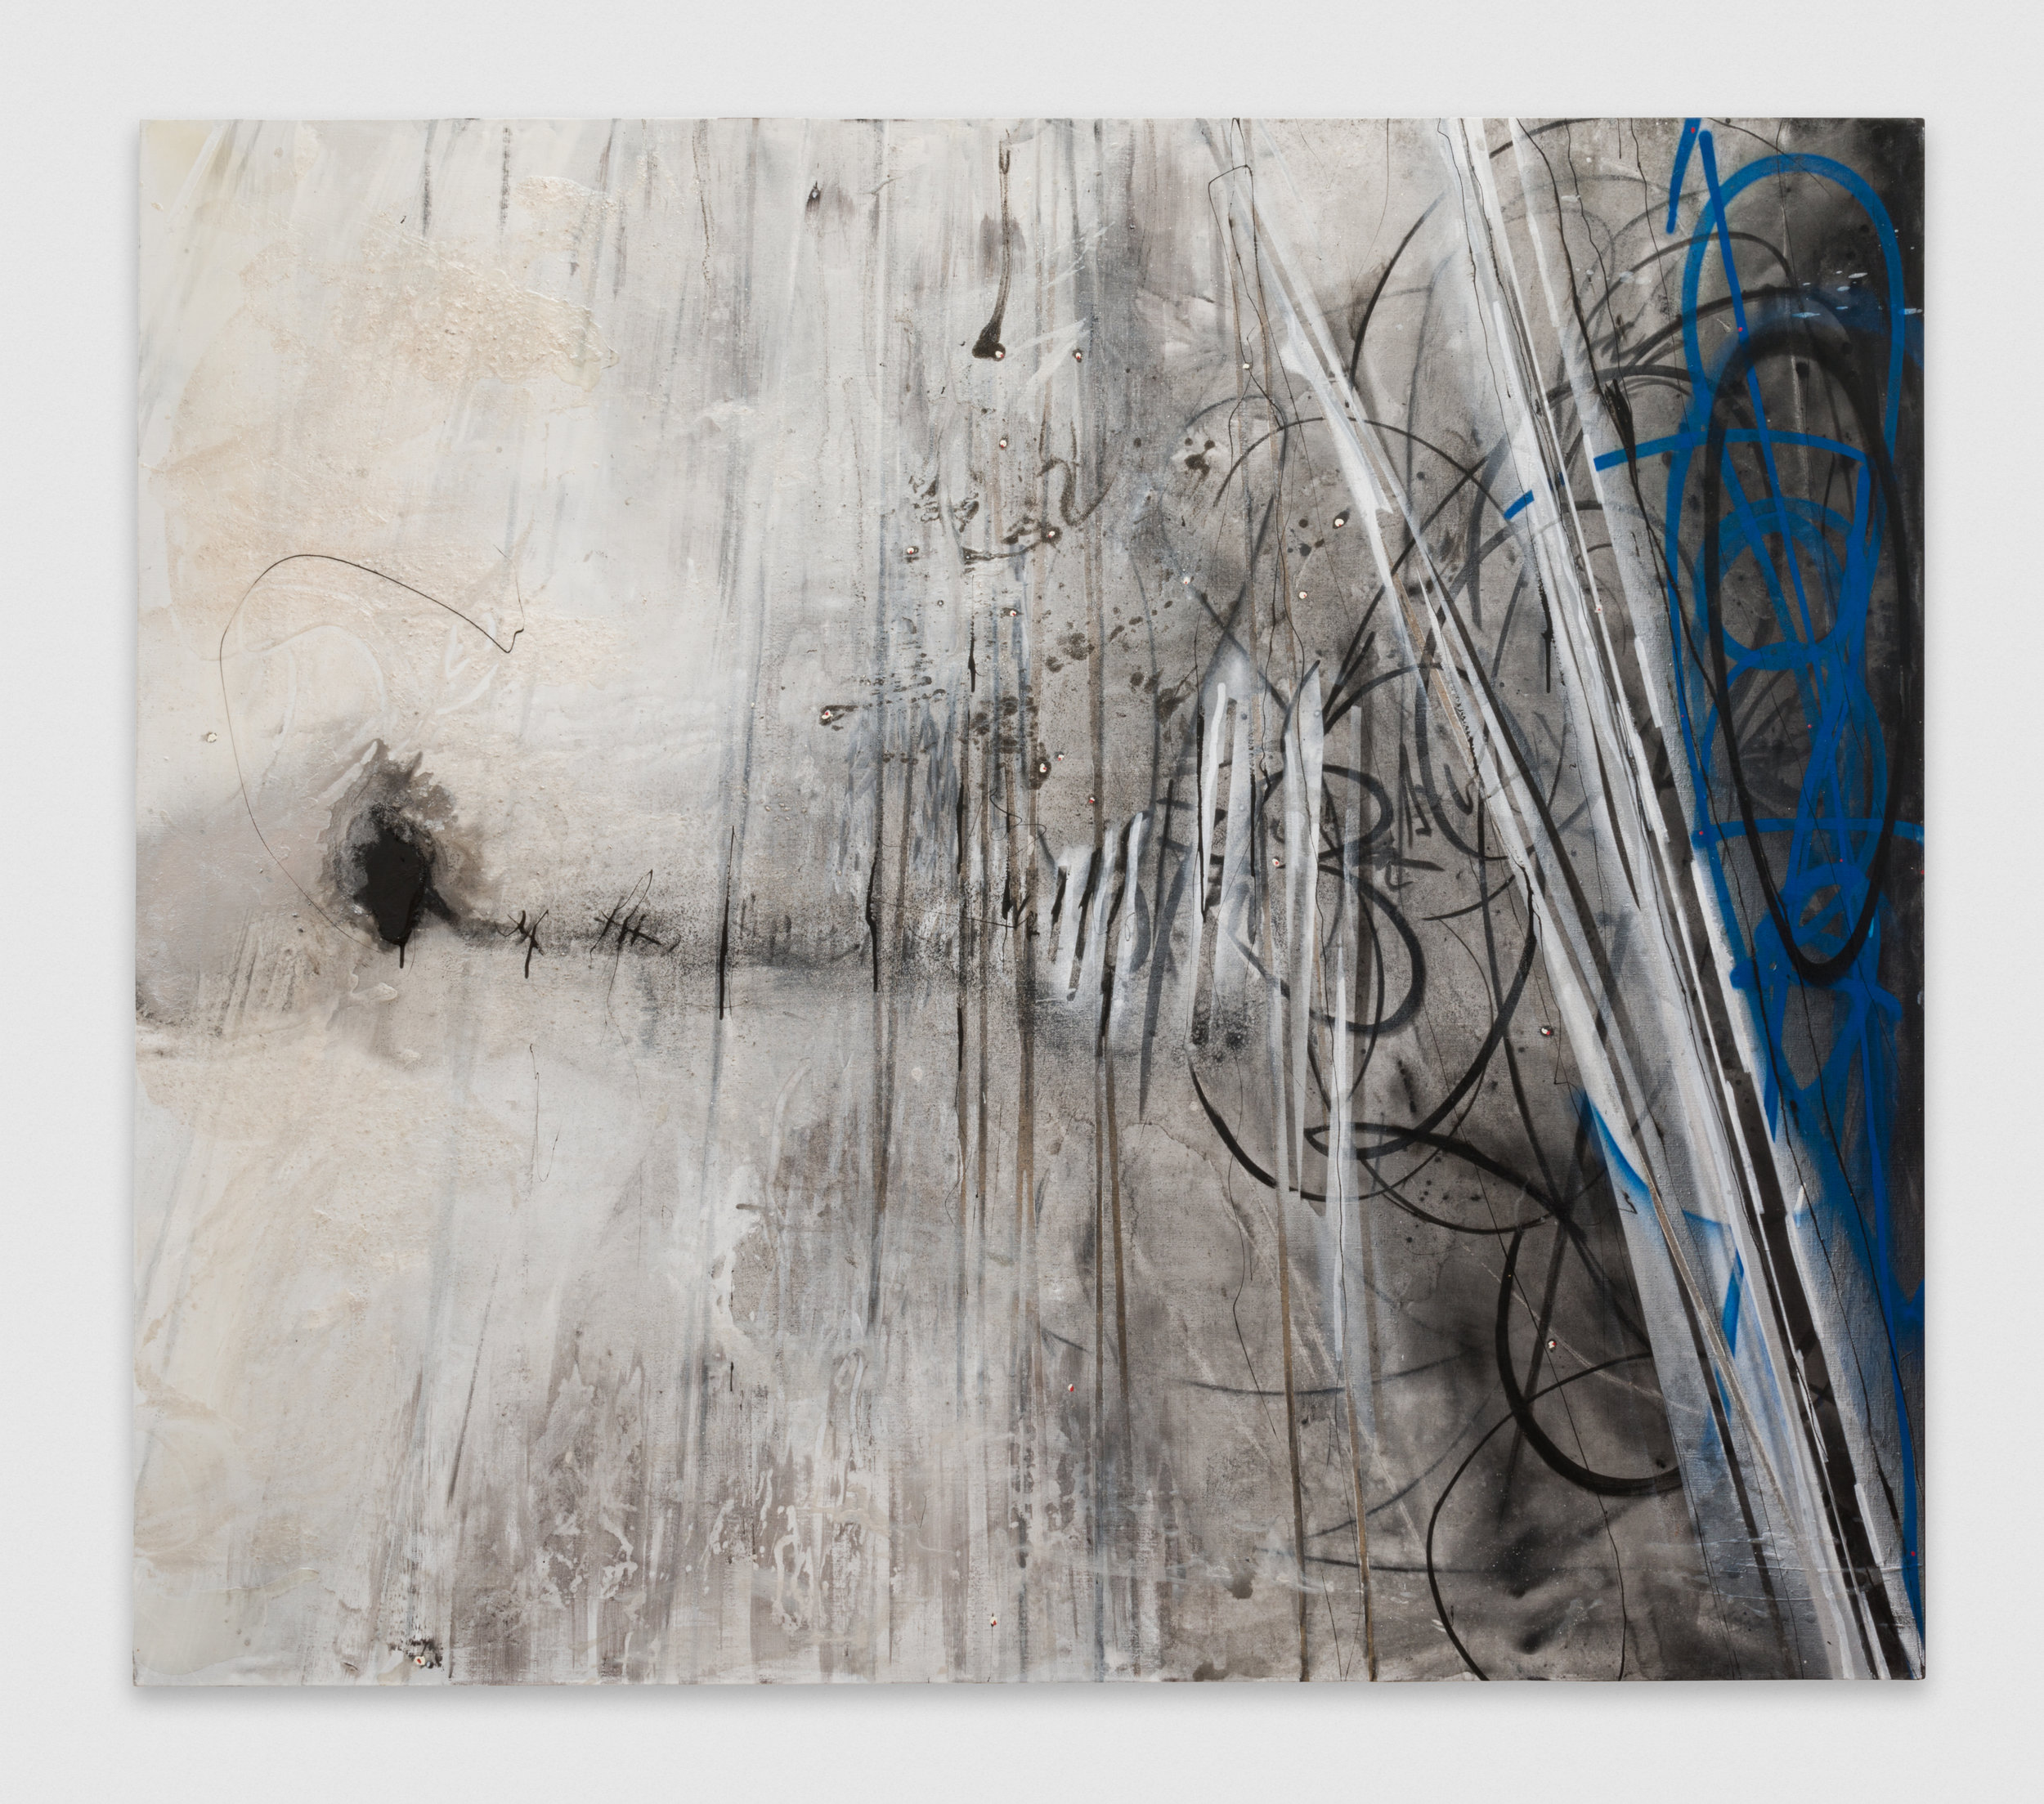 Suzanne McClelland  Domestic Terrorism: Dibee NCIC W108732930  2015 Charcoal, polymer, spray paint, and oil on linen 84h x 96w in SM288